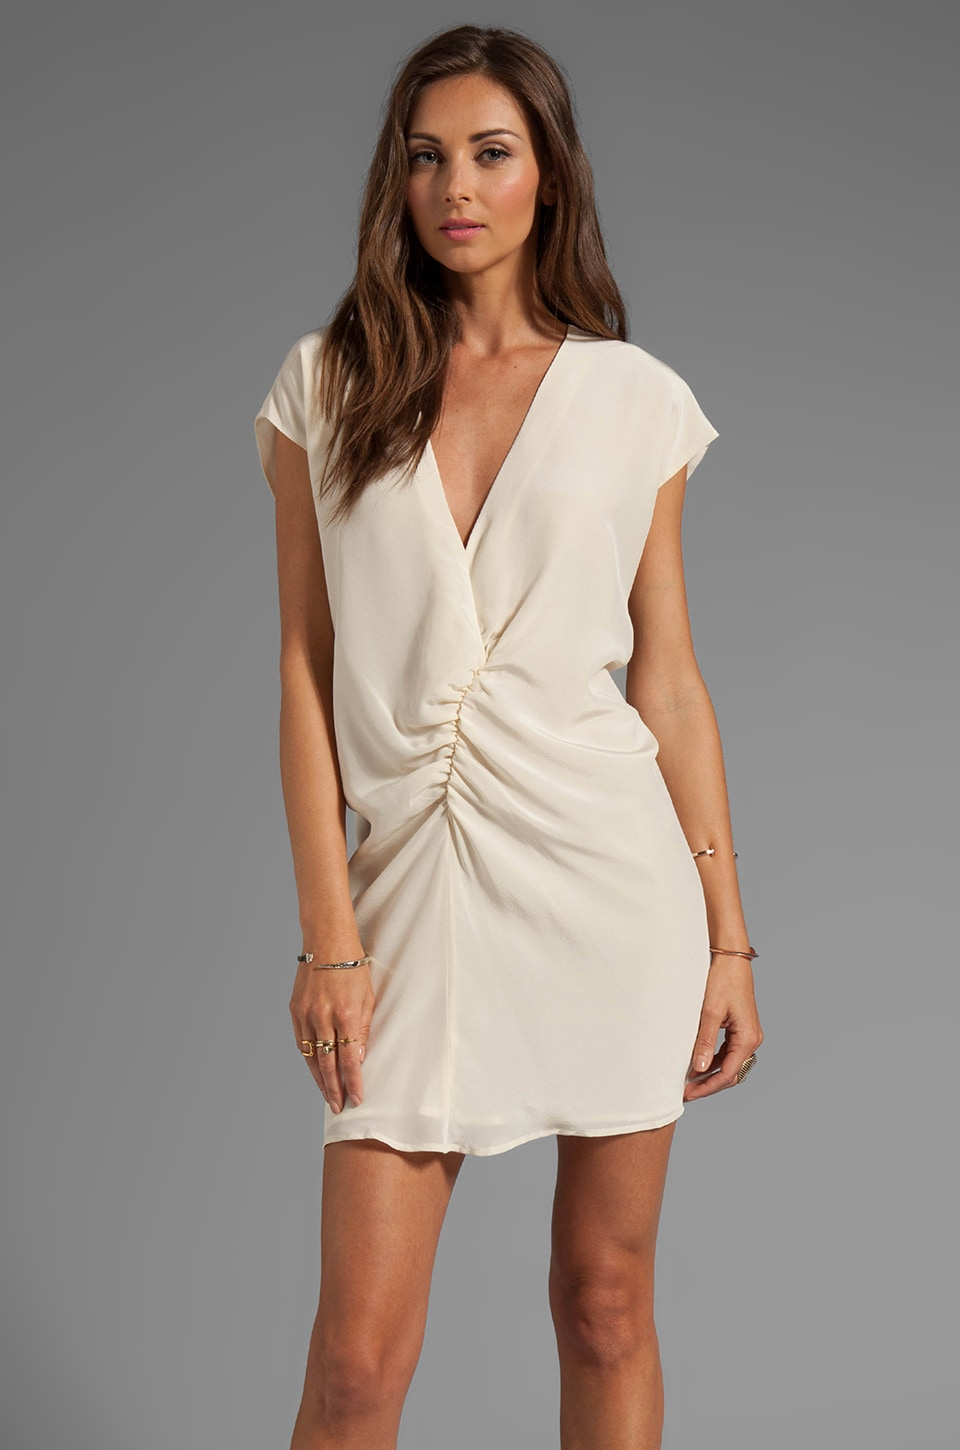 BLAQUE LABEL Dress in Cream